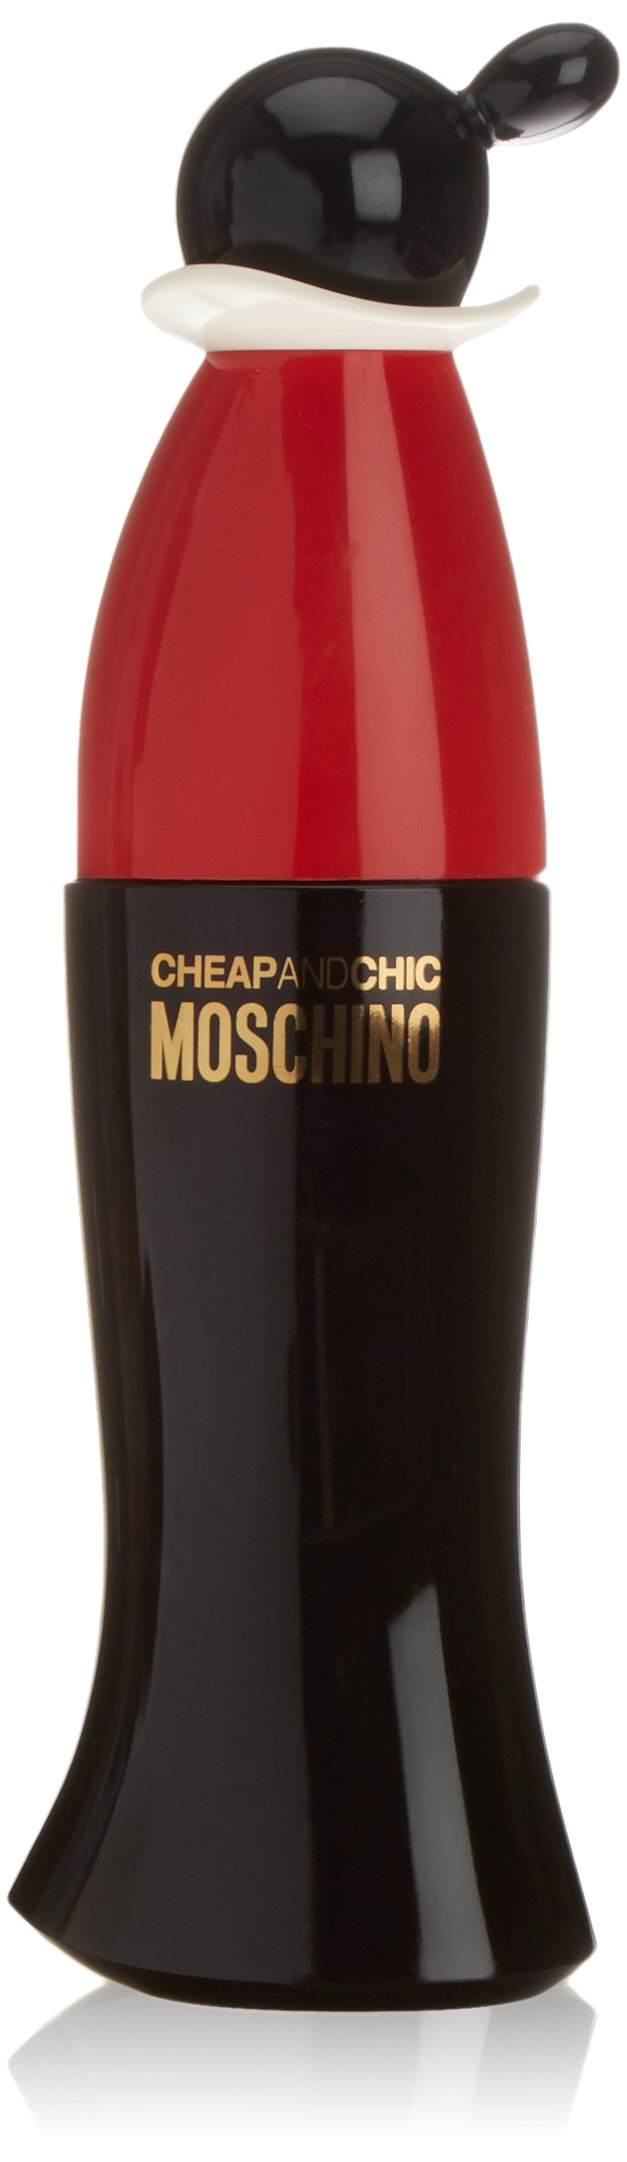 Cheap & Chic By Moschino For Women, Eau De Toilette Spray, 3.4-Ounce